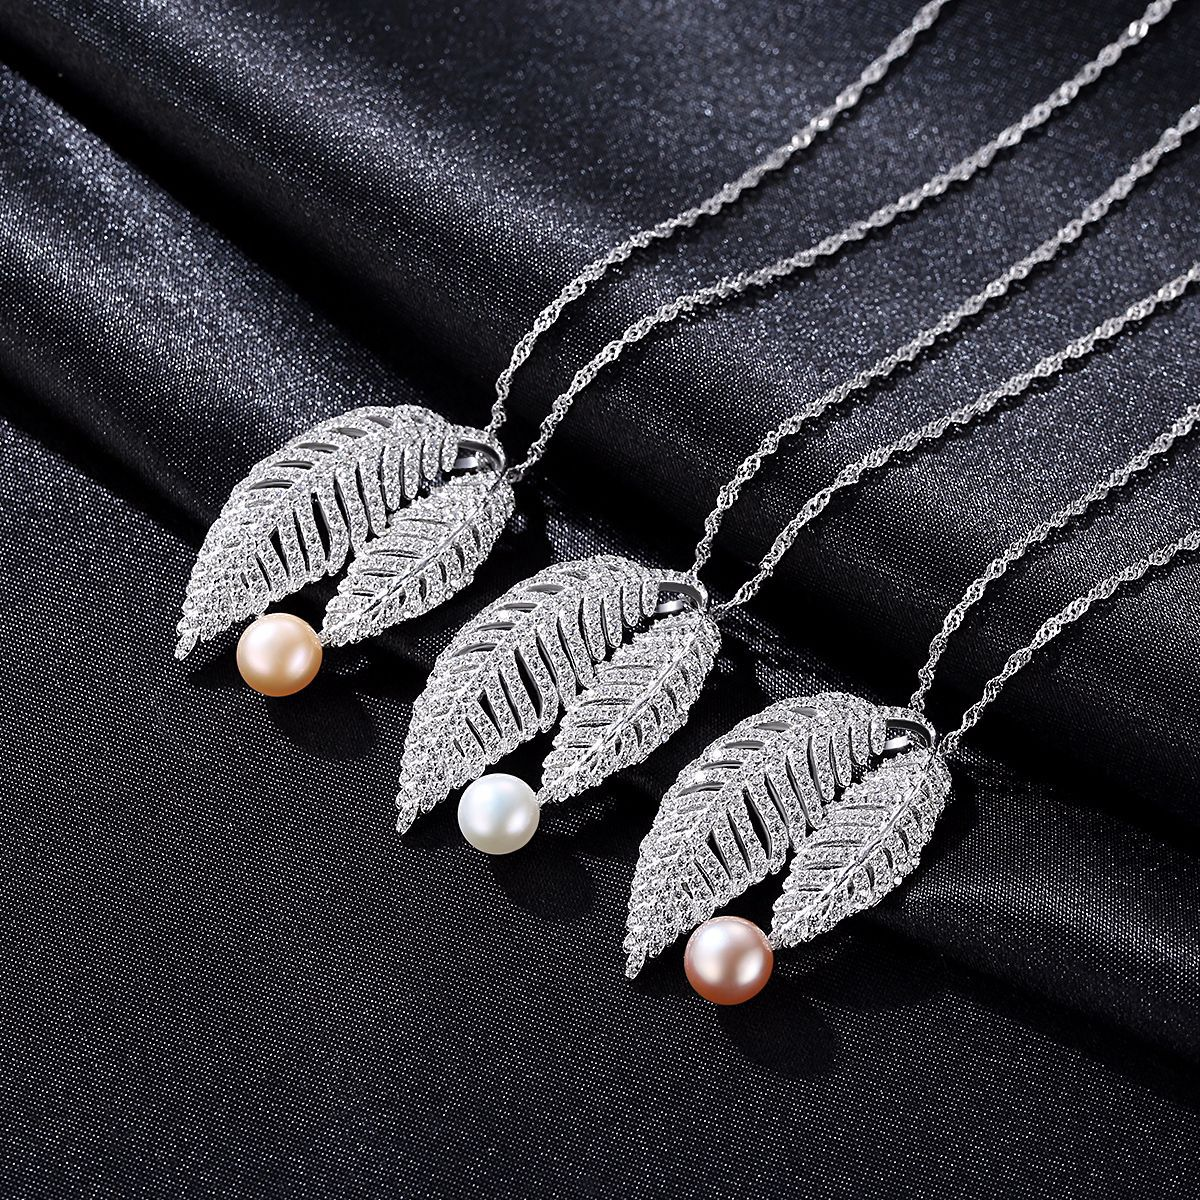 Fashion ladies S925 sterling silver necklace with 2 leaves and natural pearl pendant jewerly